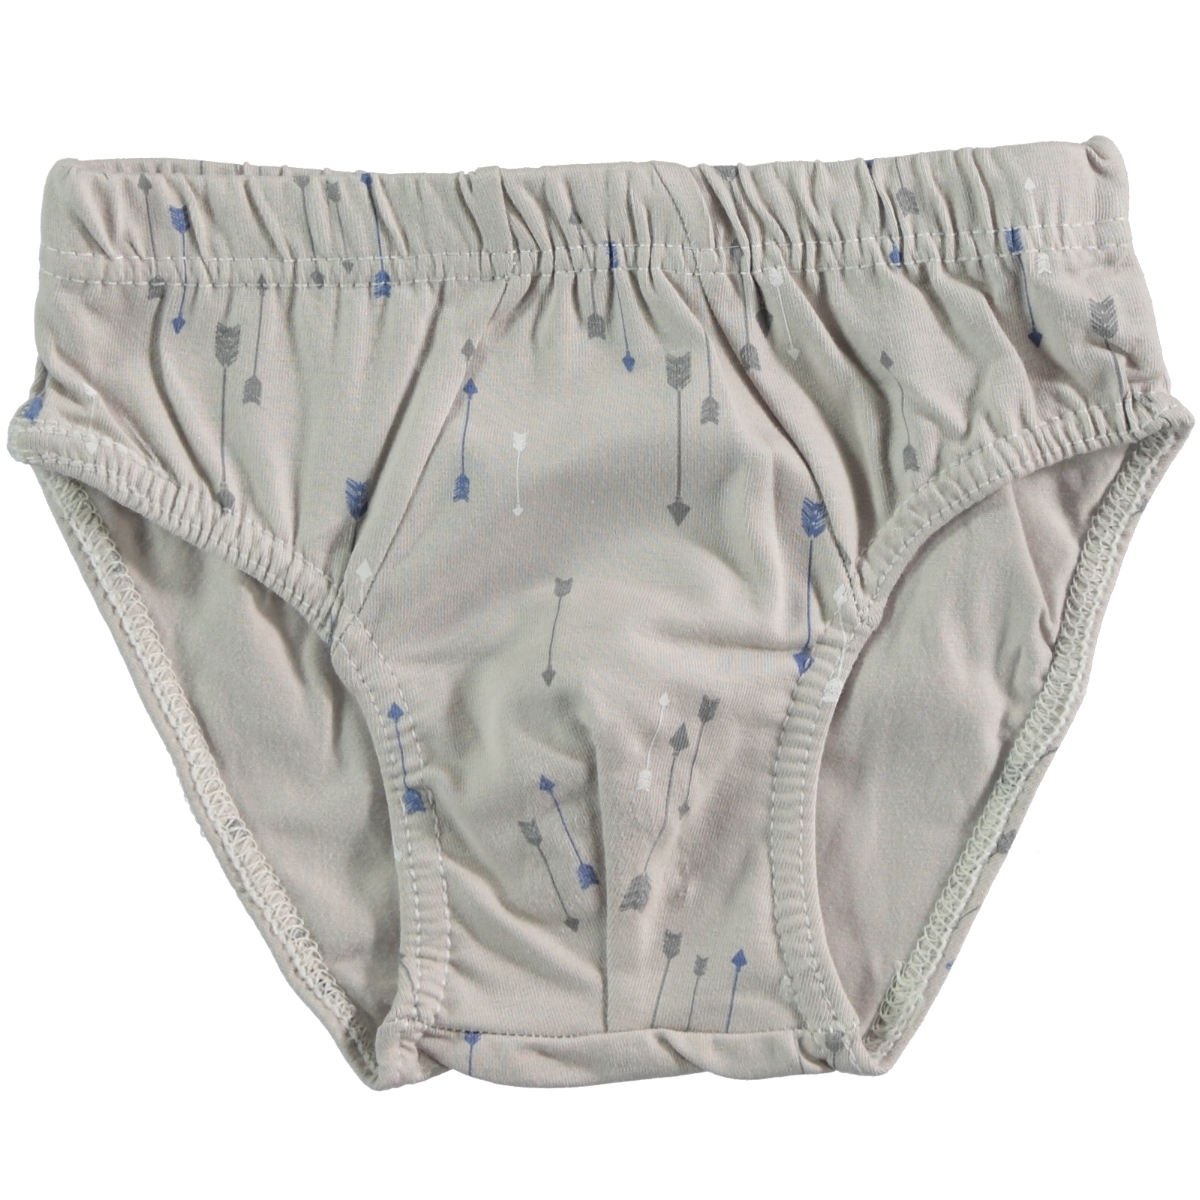 Donella Ecru Beige Panties Boy Ages 2-10